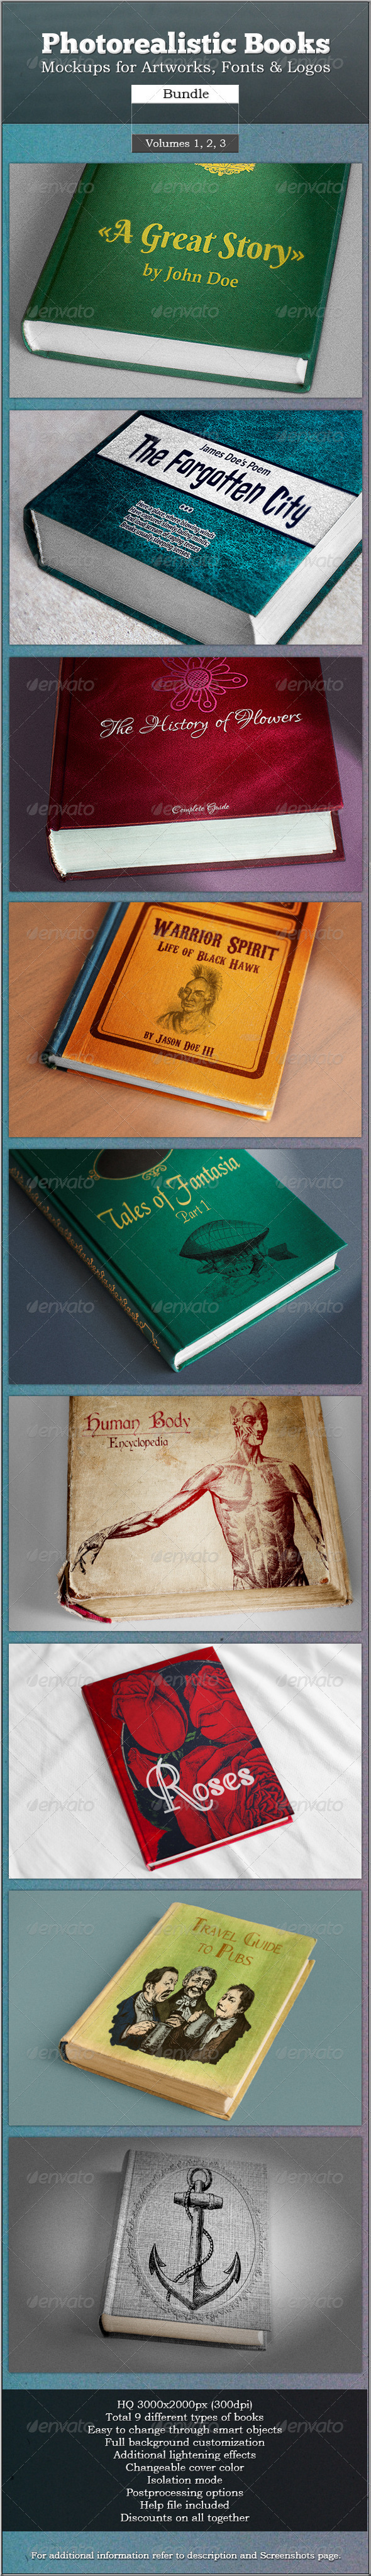 Photorealistic Books Mockups Bundle